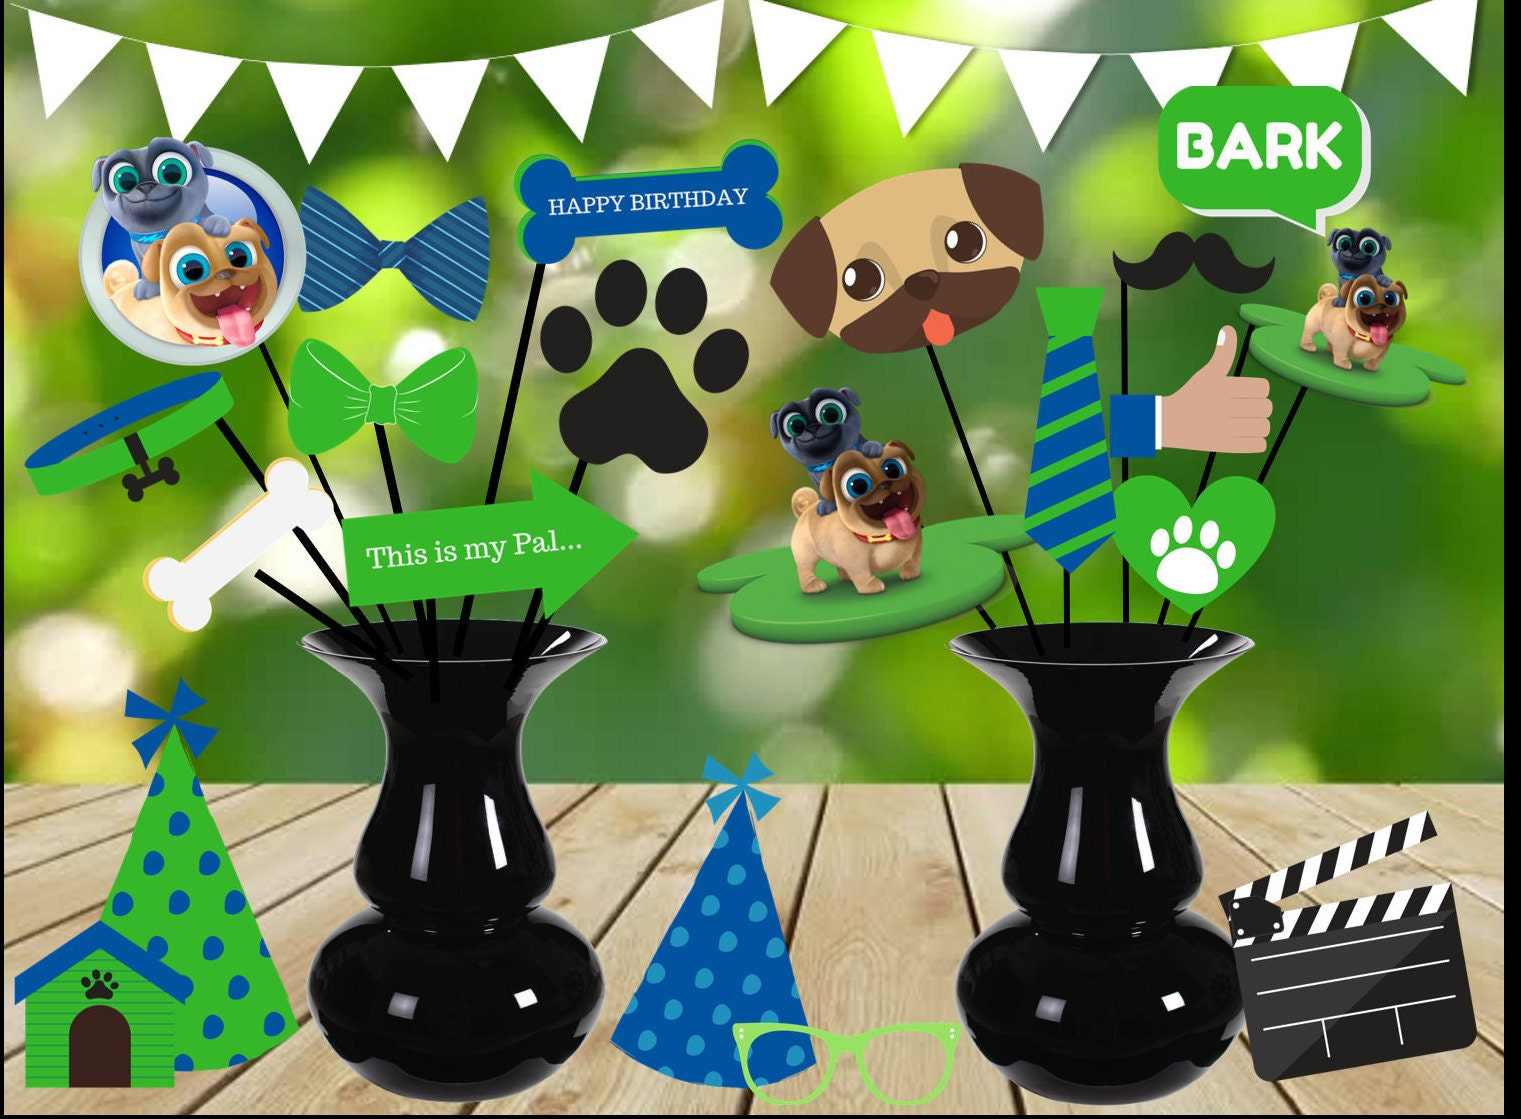 Puppy Dog Pals Photo Props Dog Party Decorations